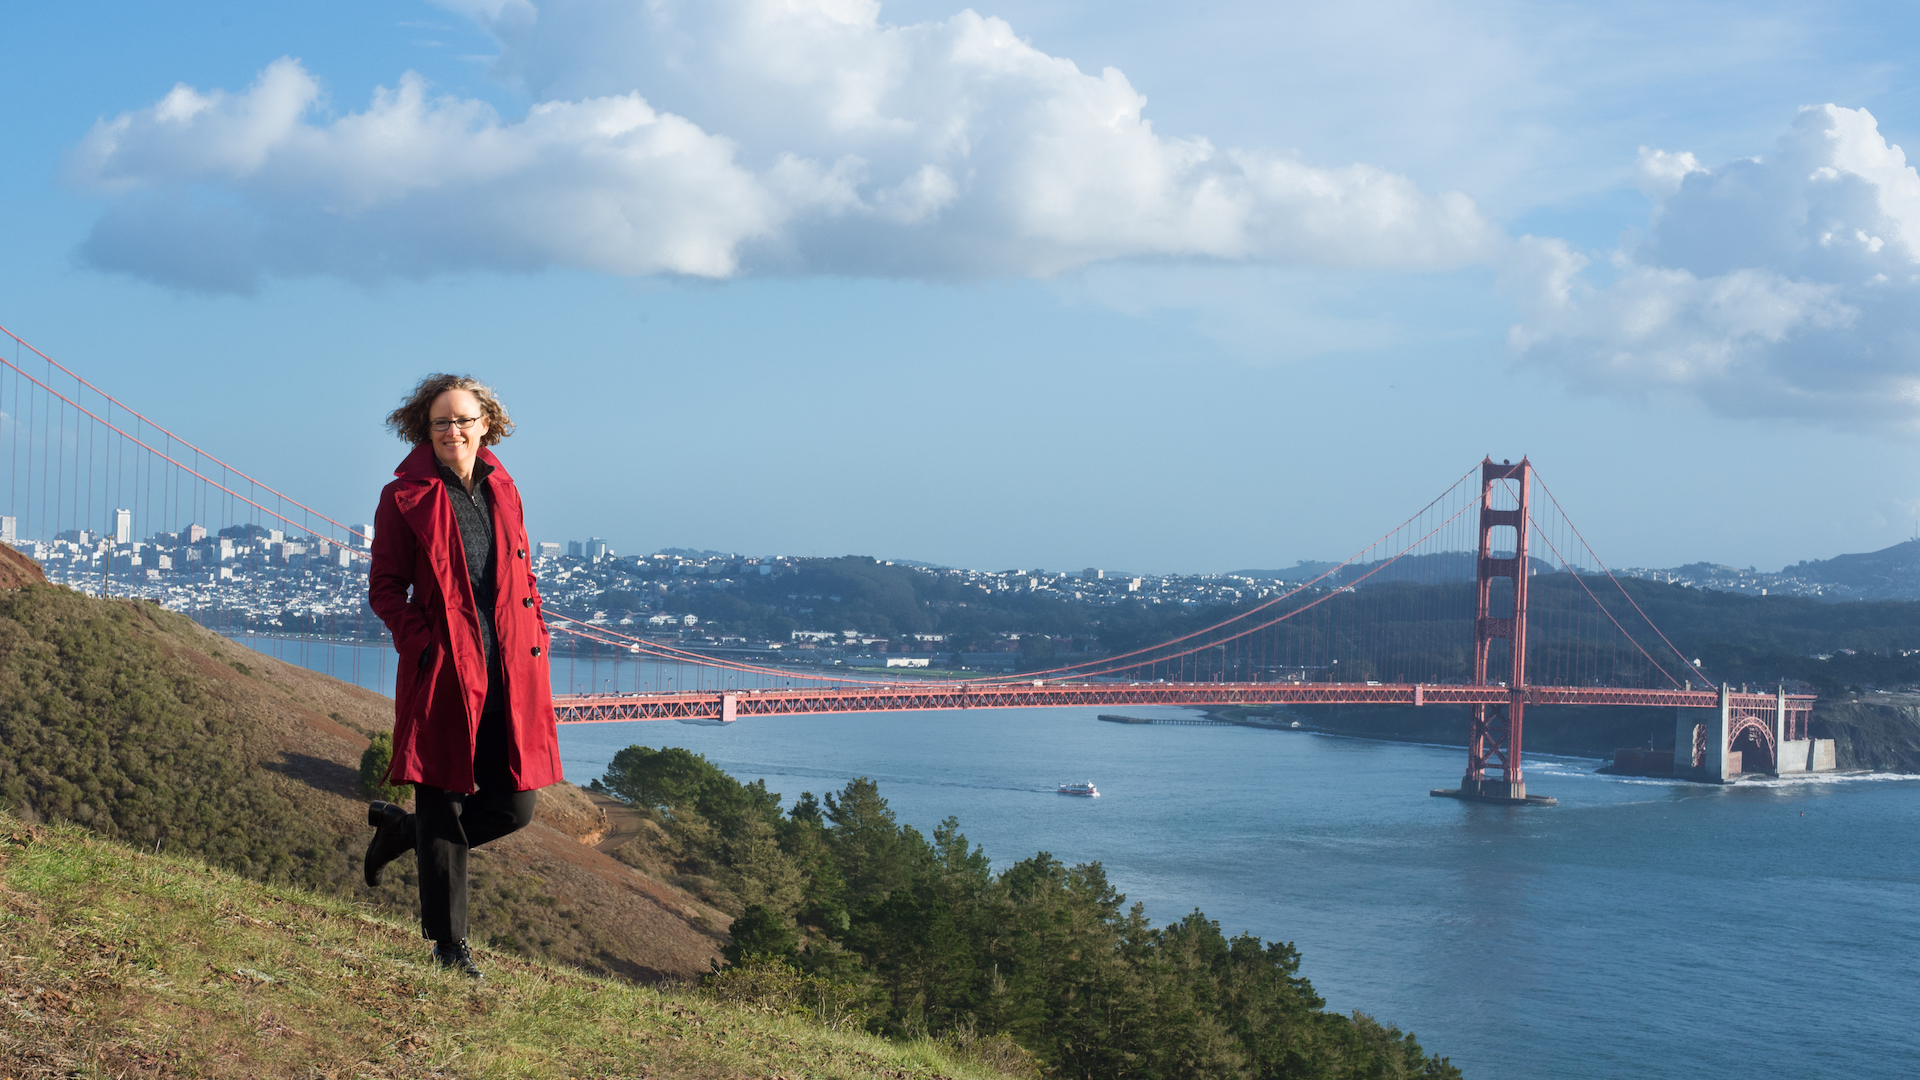 Indi Young stands on a hill overlooking the Golden Gate Bridge